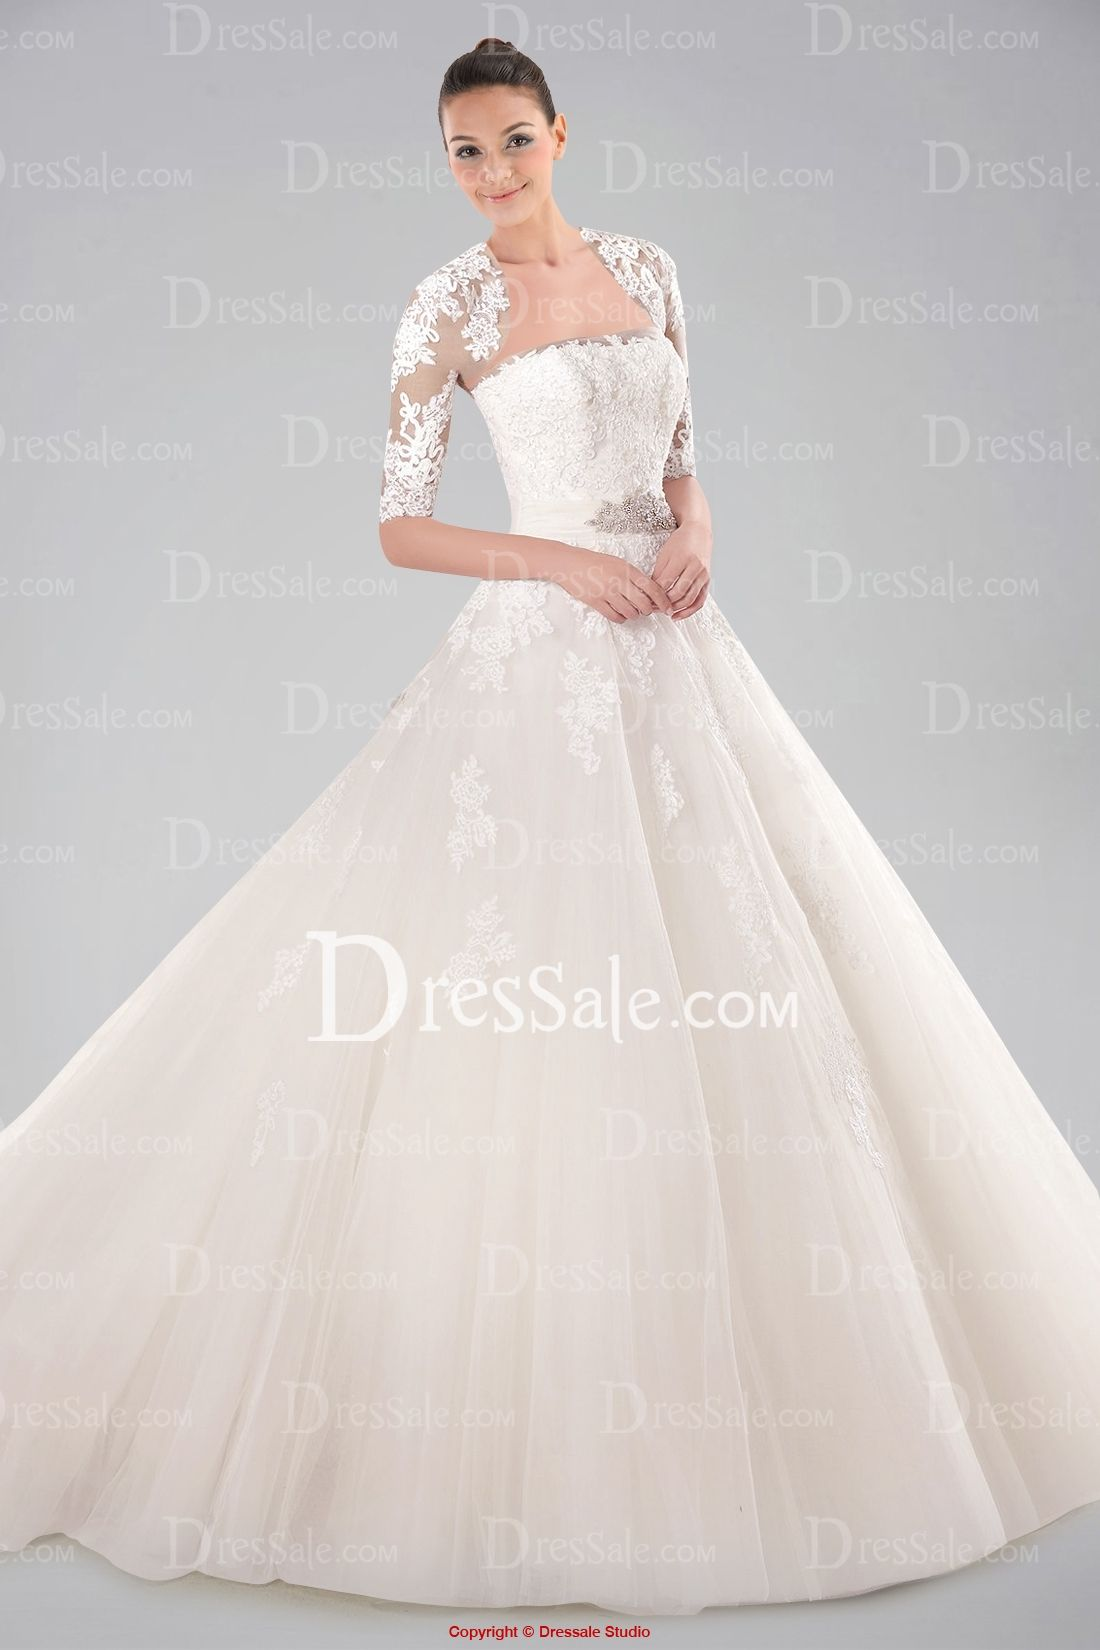 Tempting half sleeve ball gown wedding dress featuring appliques and